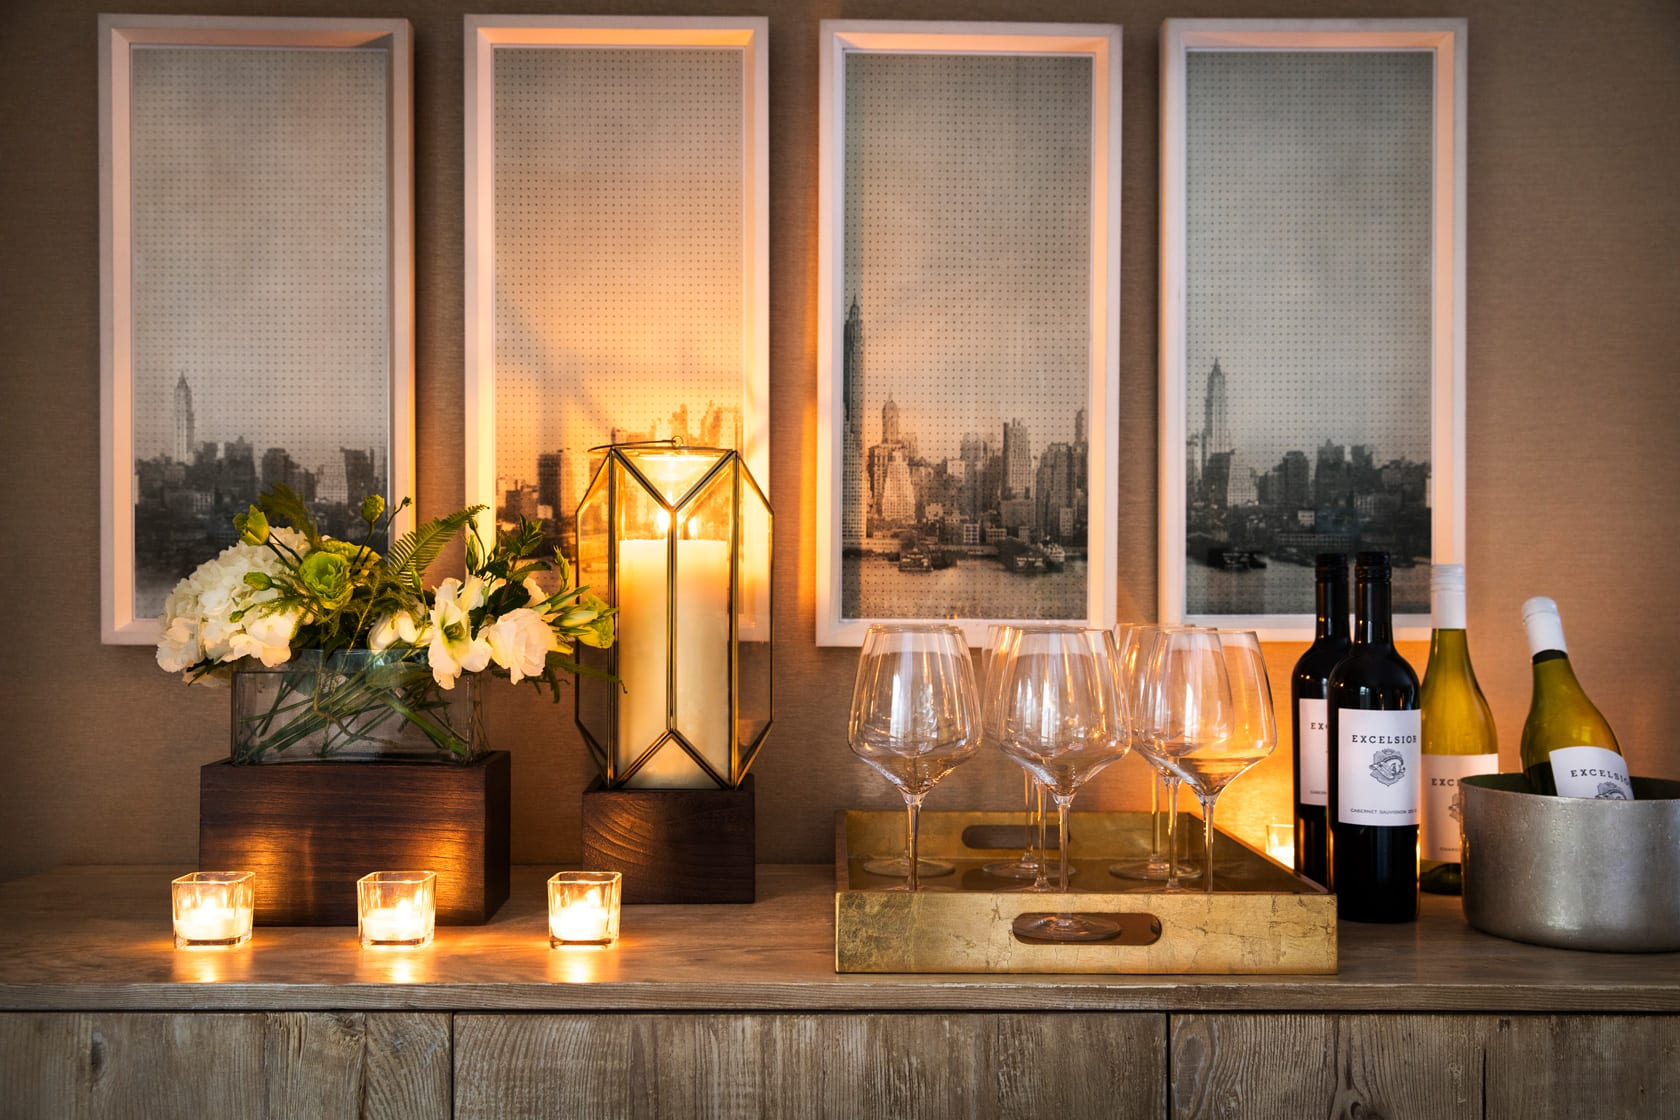 Wine bar setup inside a Gardens Hotel Penthouse Suite. At the far right is a metal ice bucket holding a white wine. A large gold serving tray holds nine empty wine glasses. Two red wine bottles and another white wine bottle are just beside it. Three votive candles are placed to the left, with a taller candle and flower vase behind.